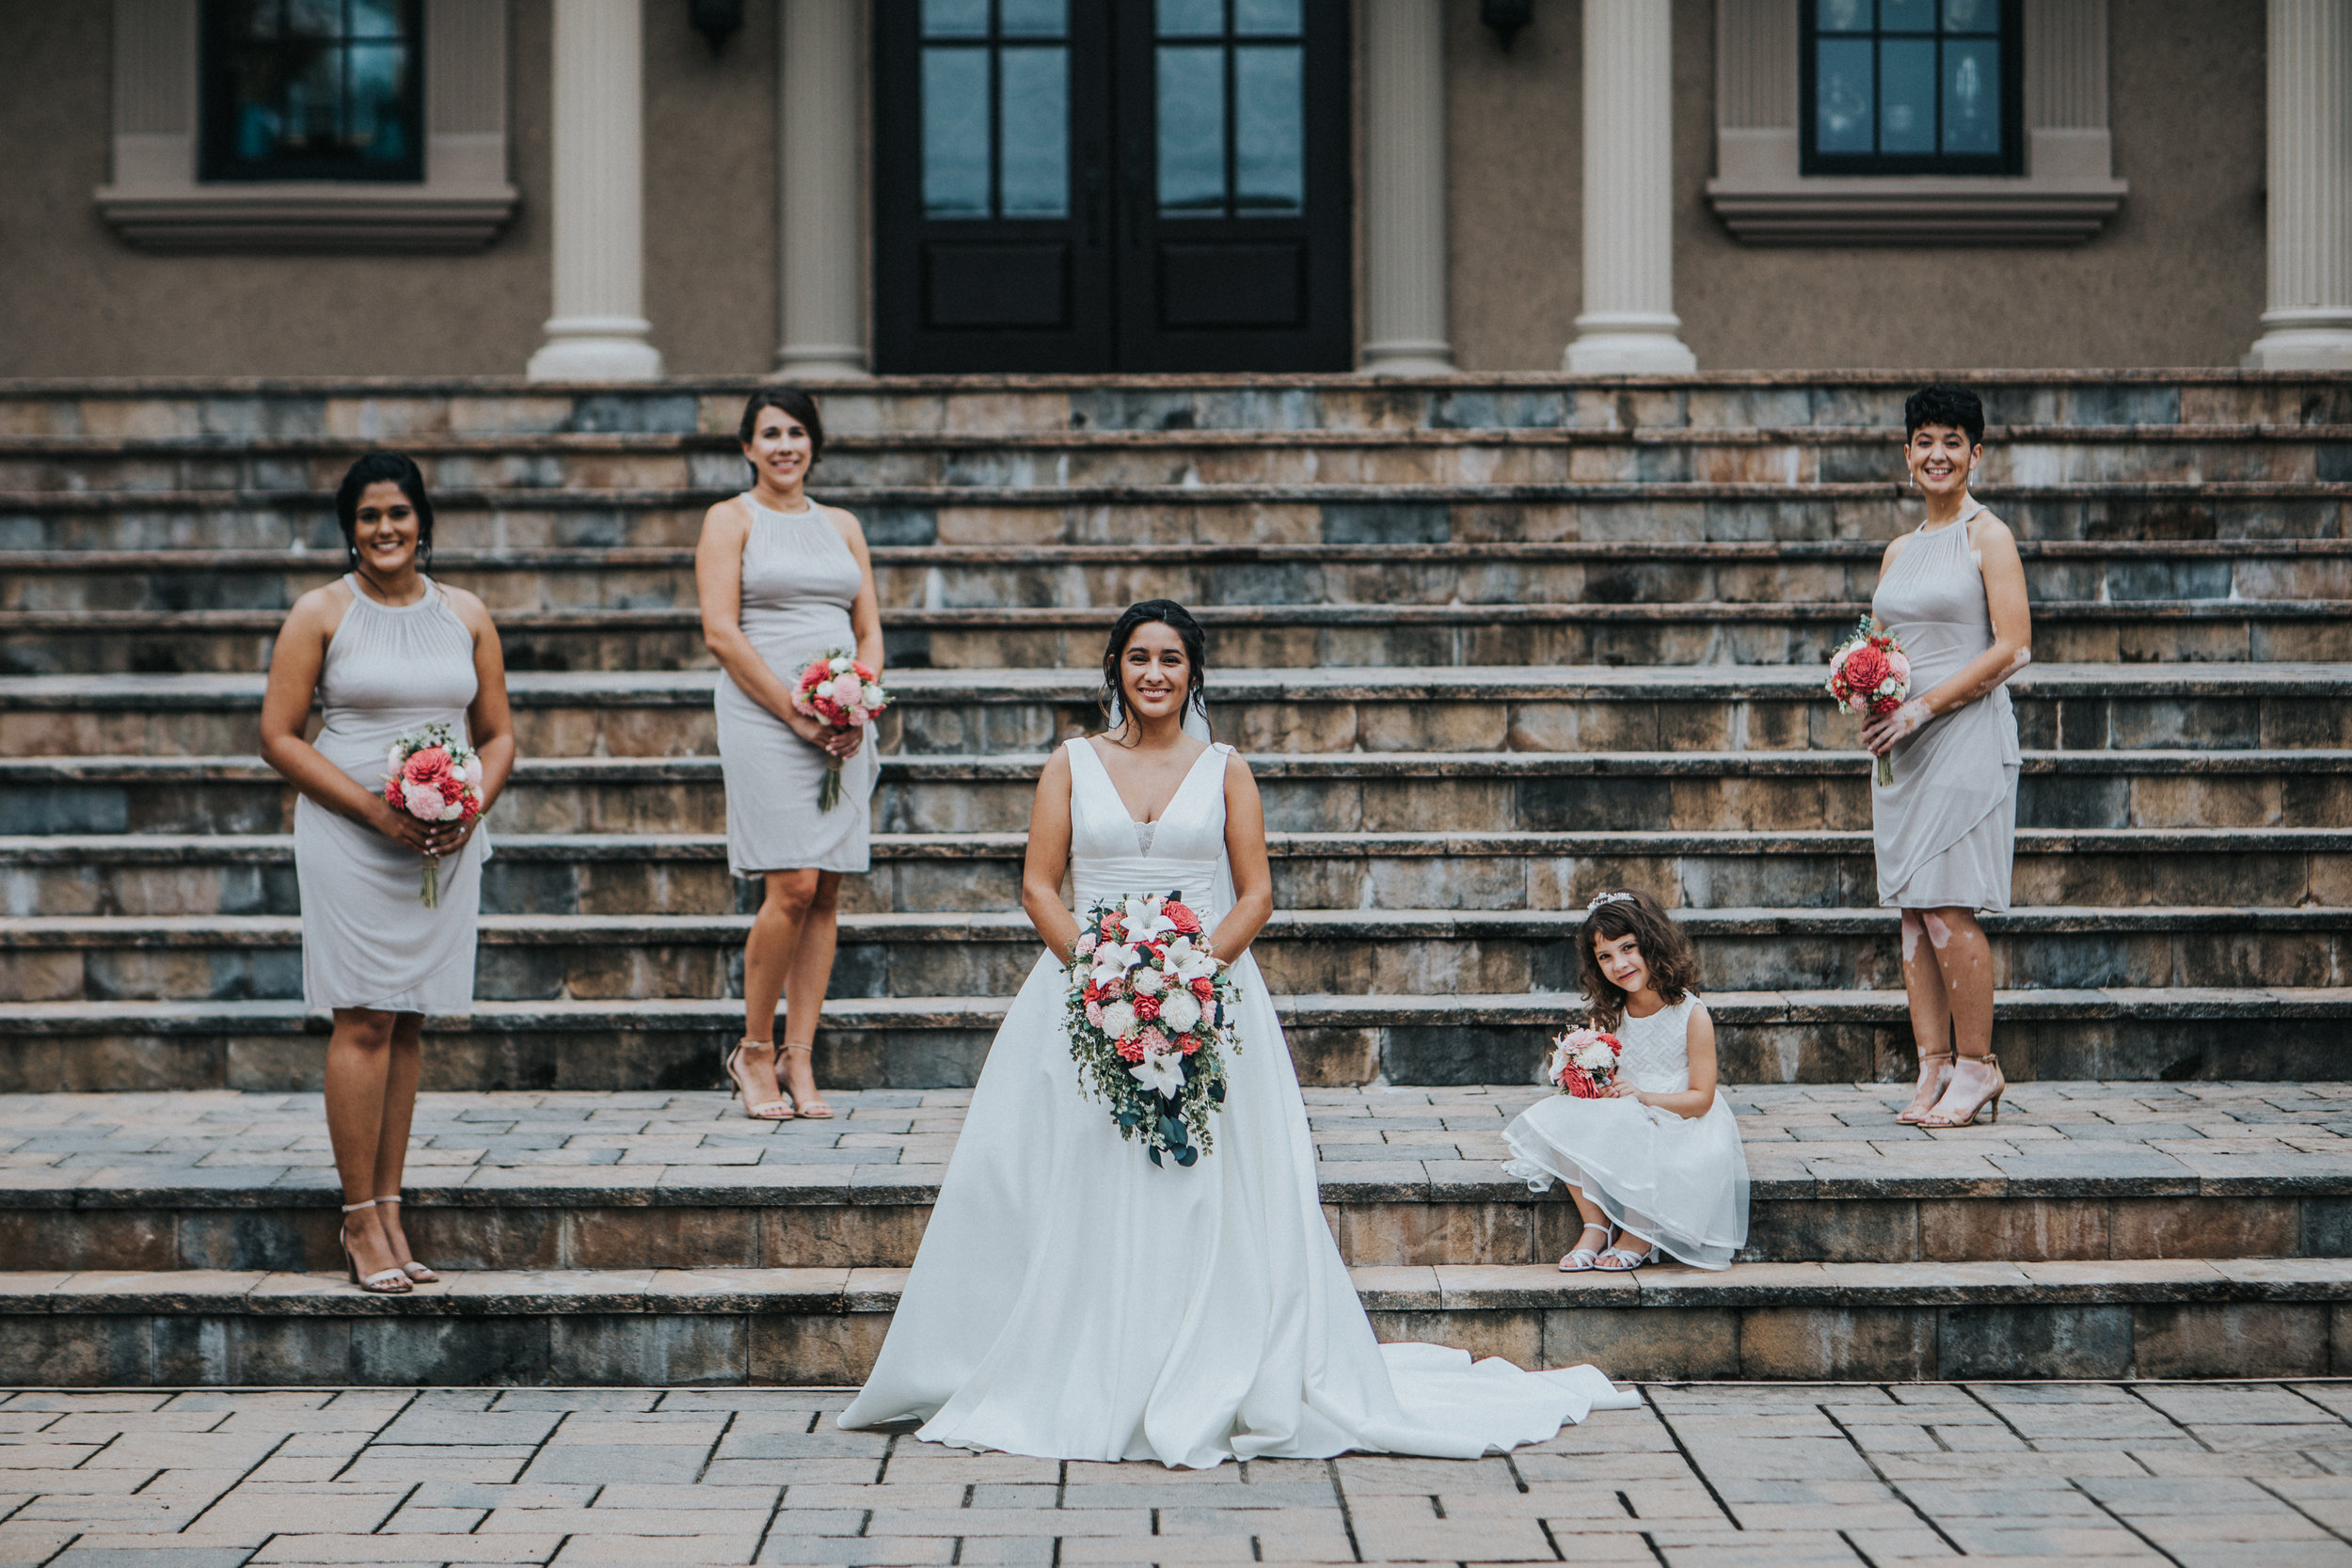 New-Jersey-Wedding-Photographer-Jenna-Lynn-Photography-Wedding-Brigalias-Ashley&Sal-BridalParty-48.jpg